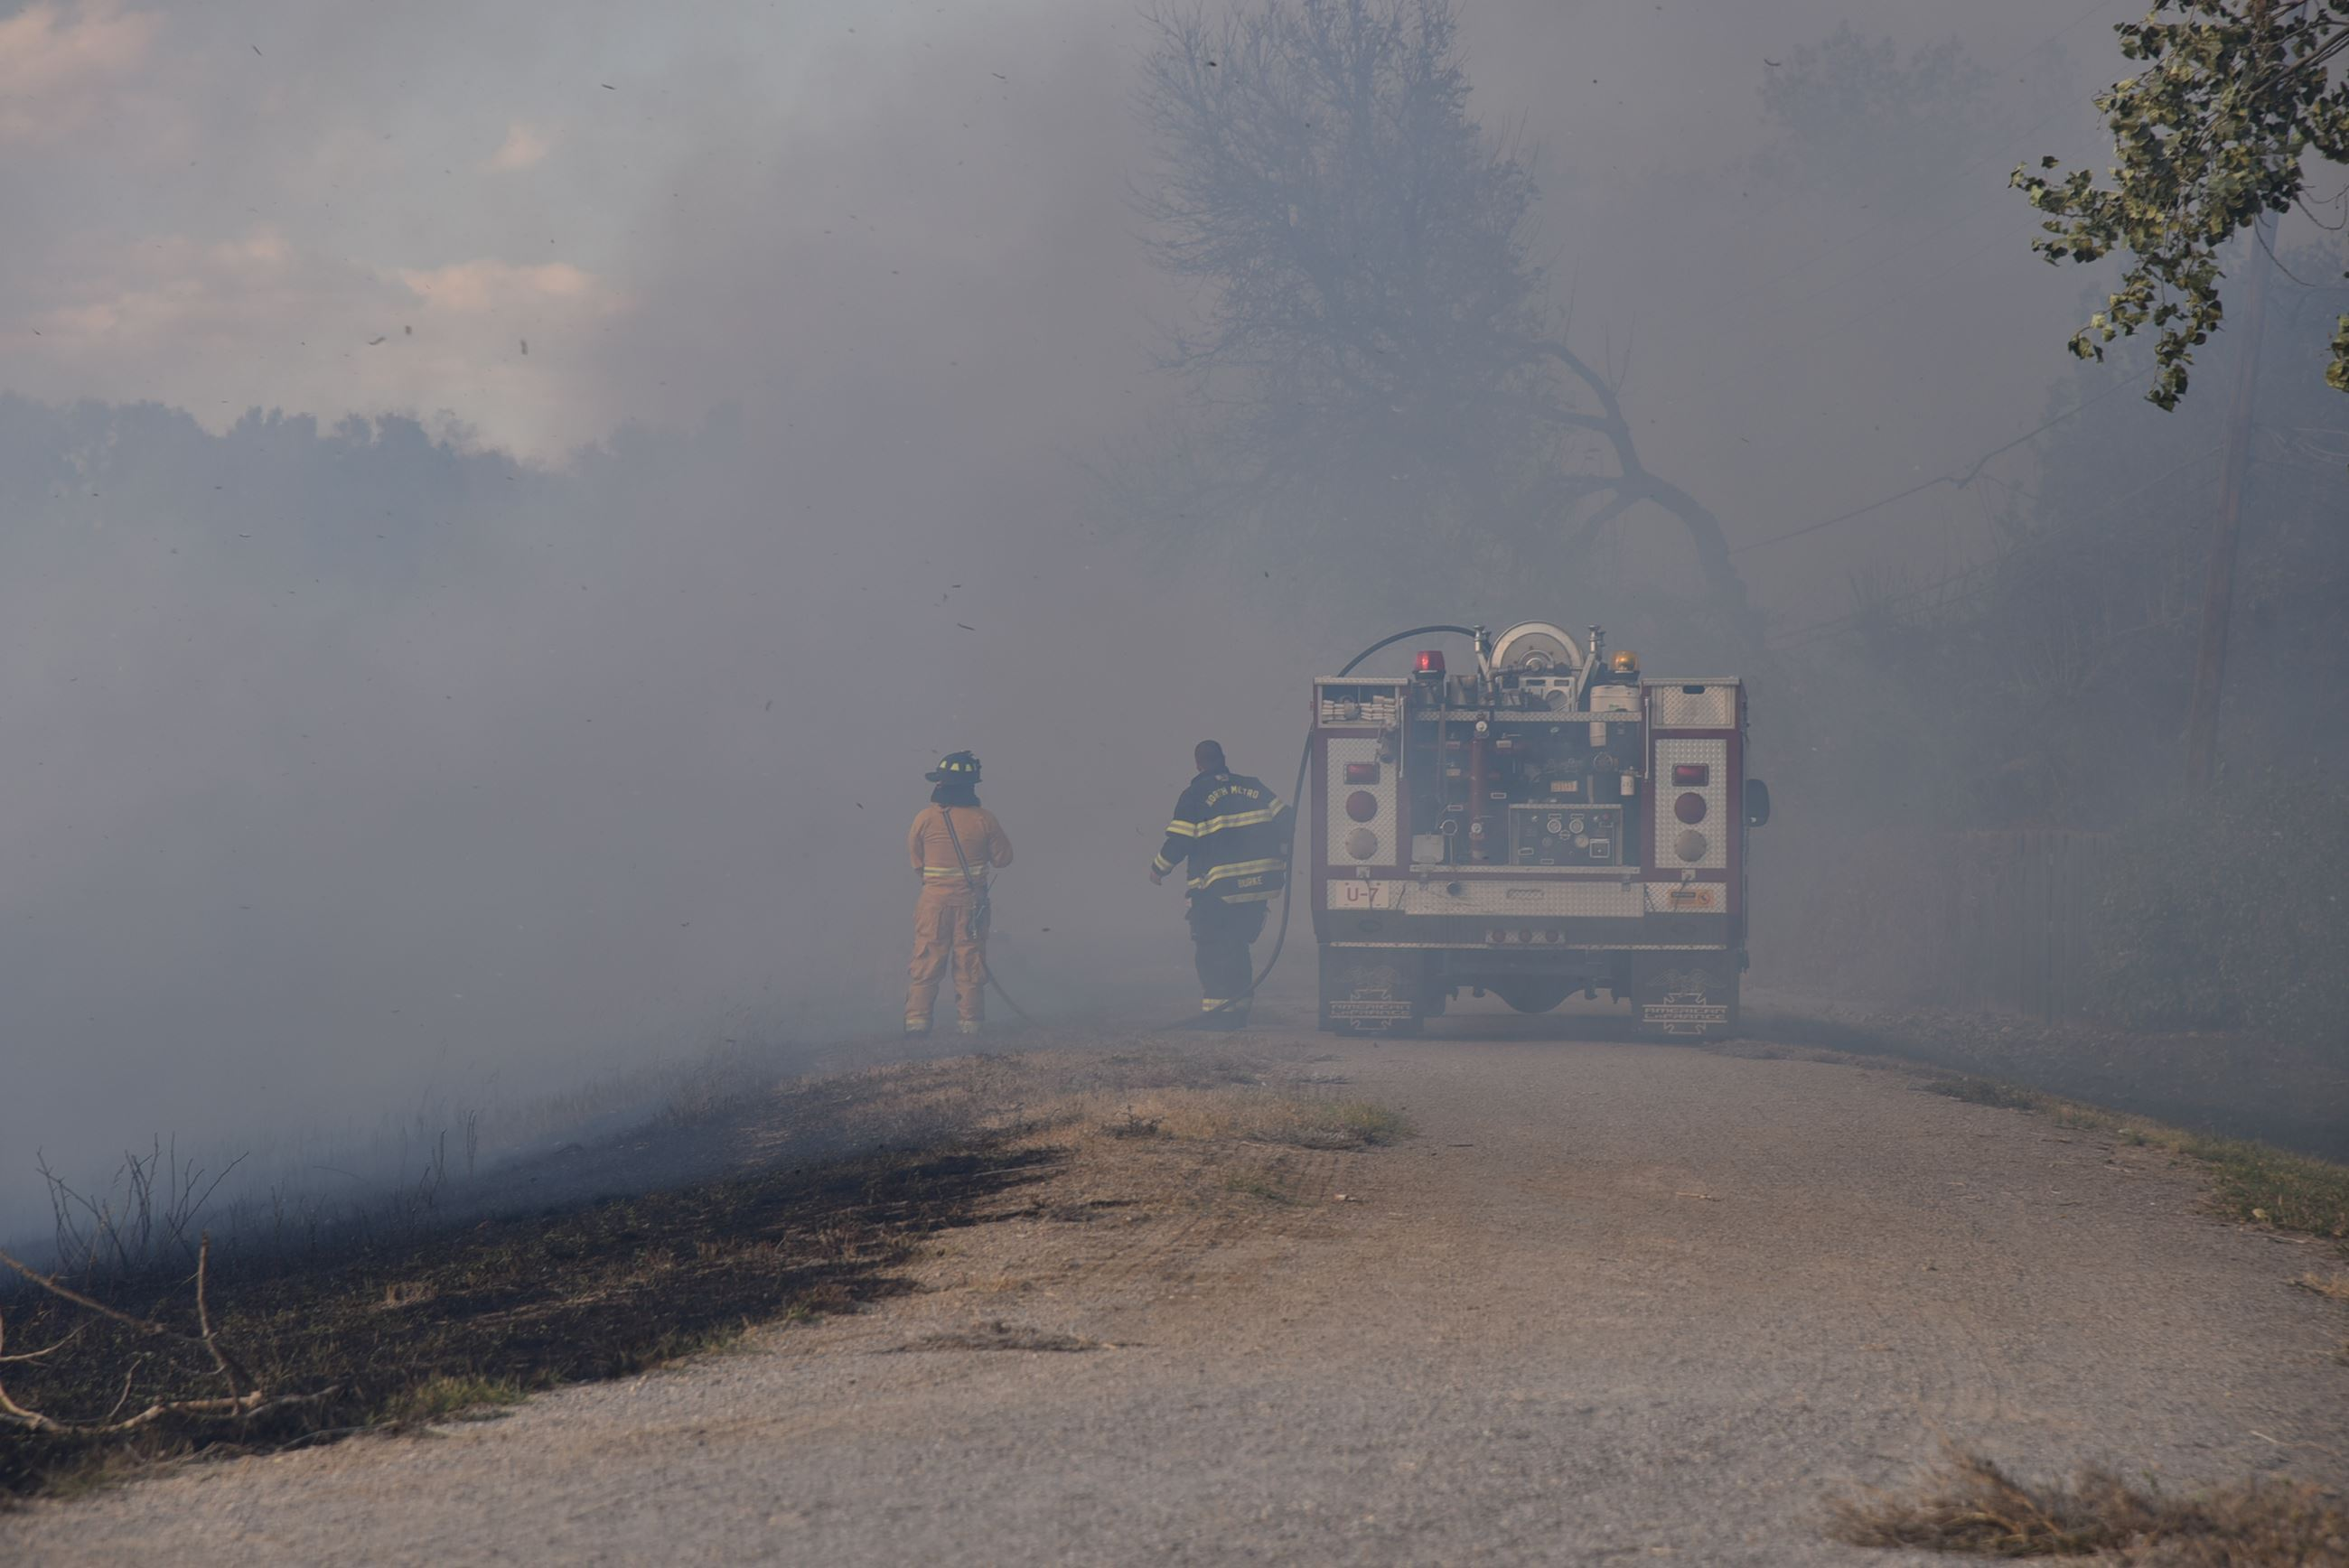 Firefighters use the assistance of a wildland brush truck to help extinguish flames of a grass fire